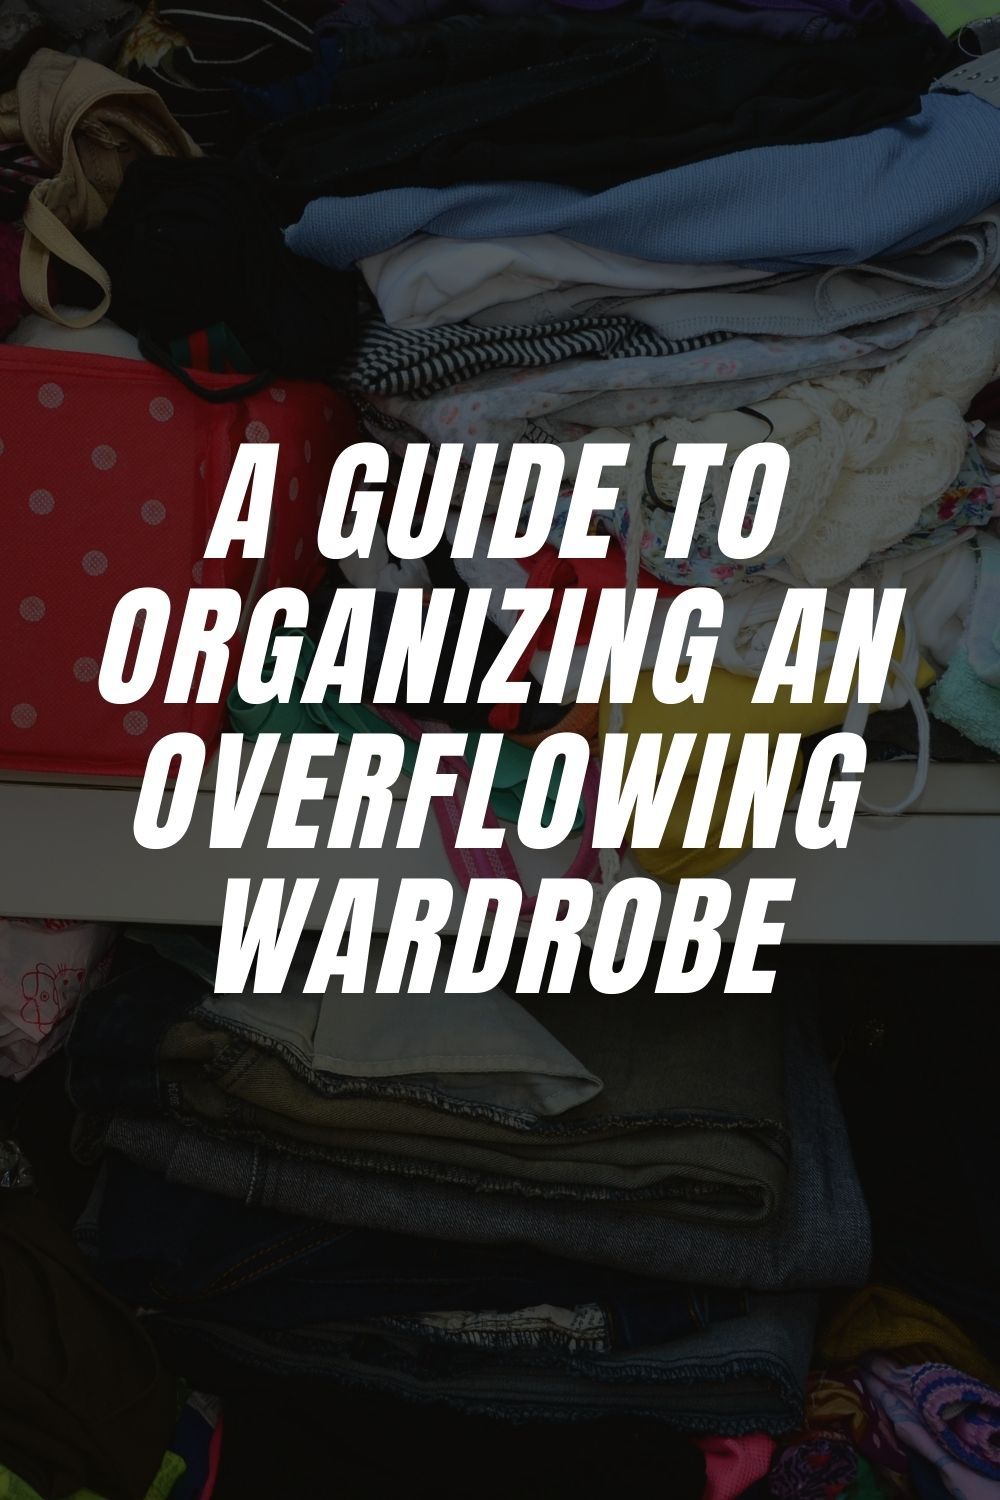 A Guide to Organizing an Overflowing Wardrobe